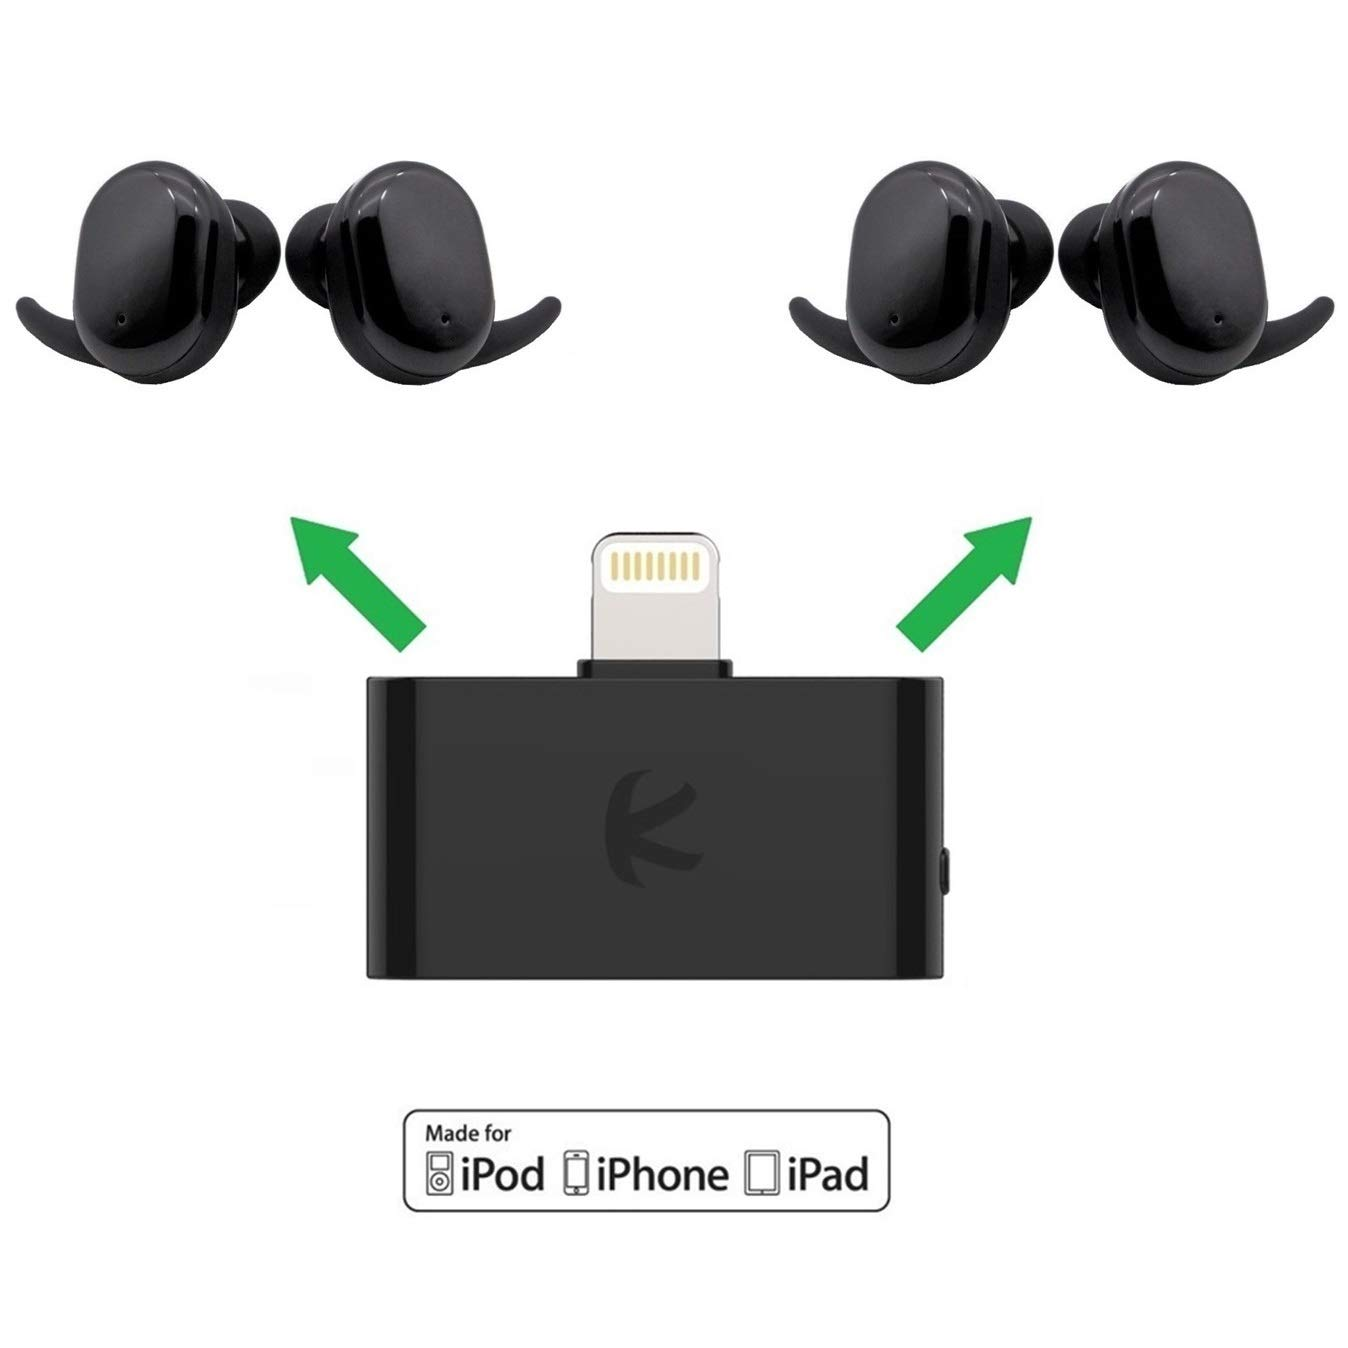 KOKKIA i10L_Plus_2AirBuds : i10L Bluetooth Transmitter Splitter Compatible with Apple iPhone,iPad,iPod Touch Plus 2 Sets AirBuds Touch True Wireless (TWS) Bluetooth Headsets.